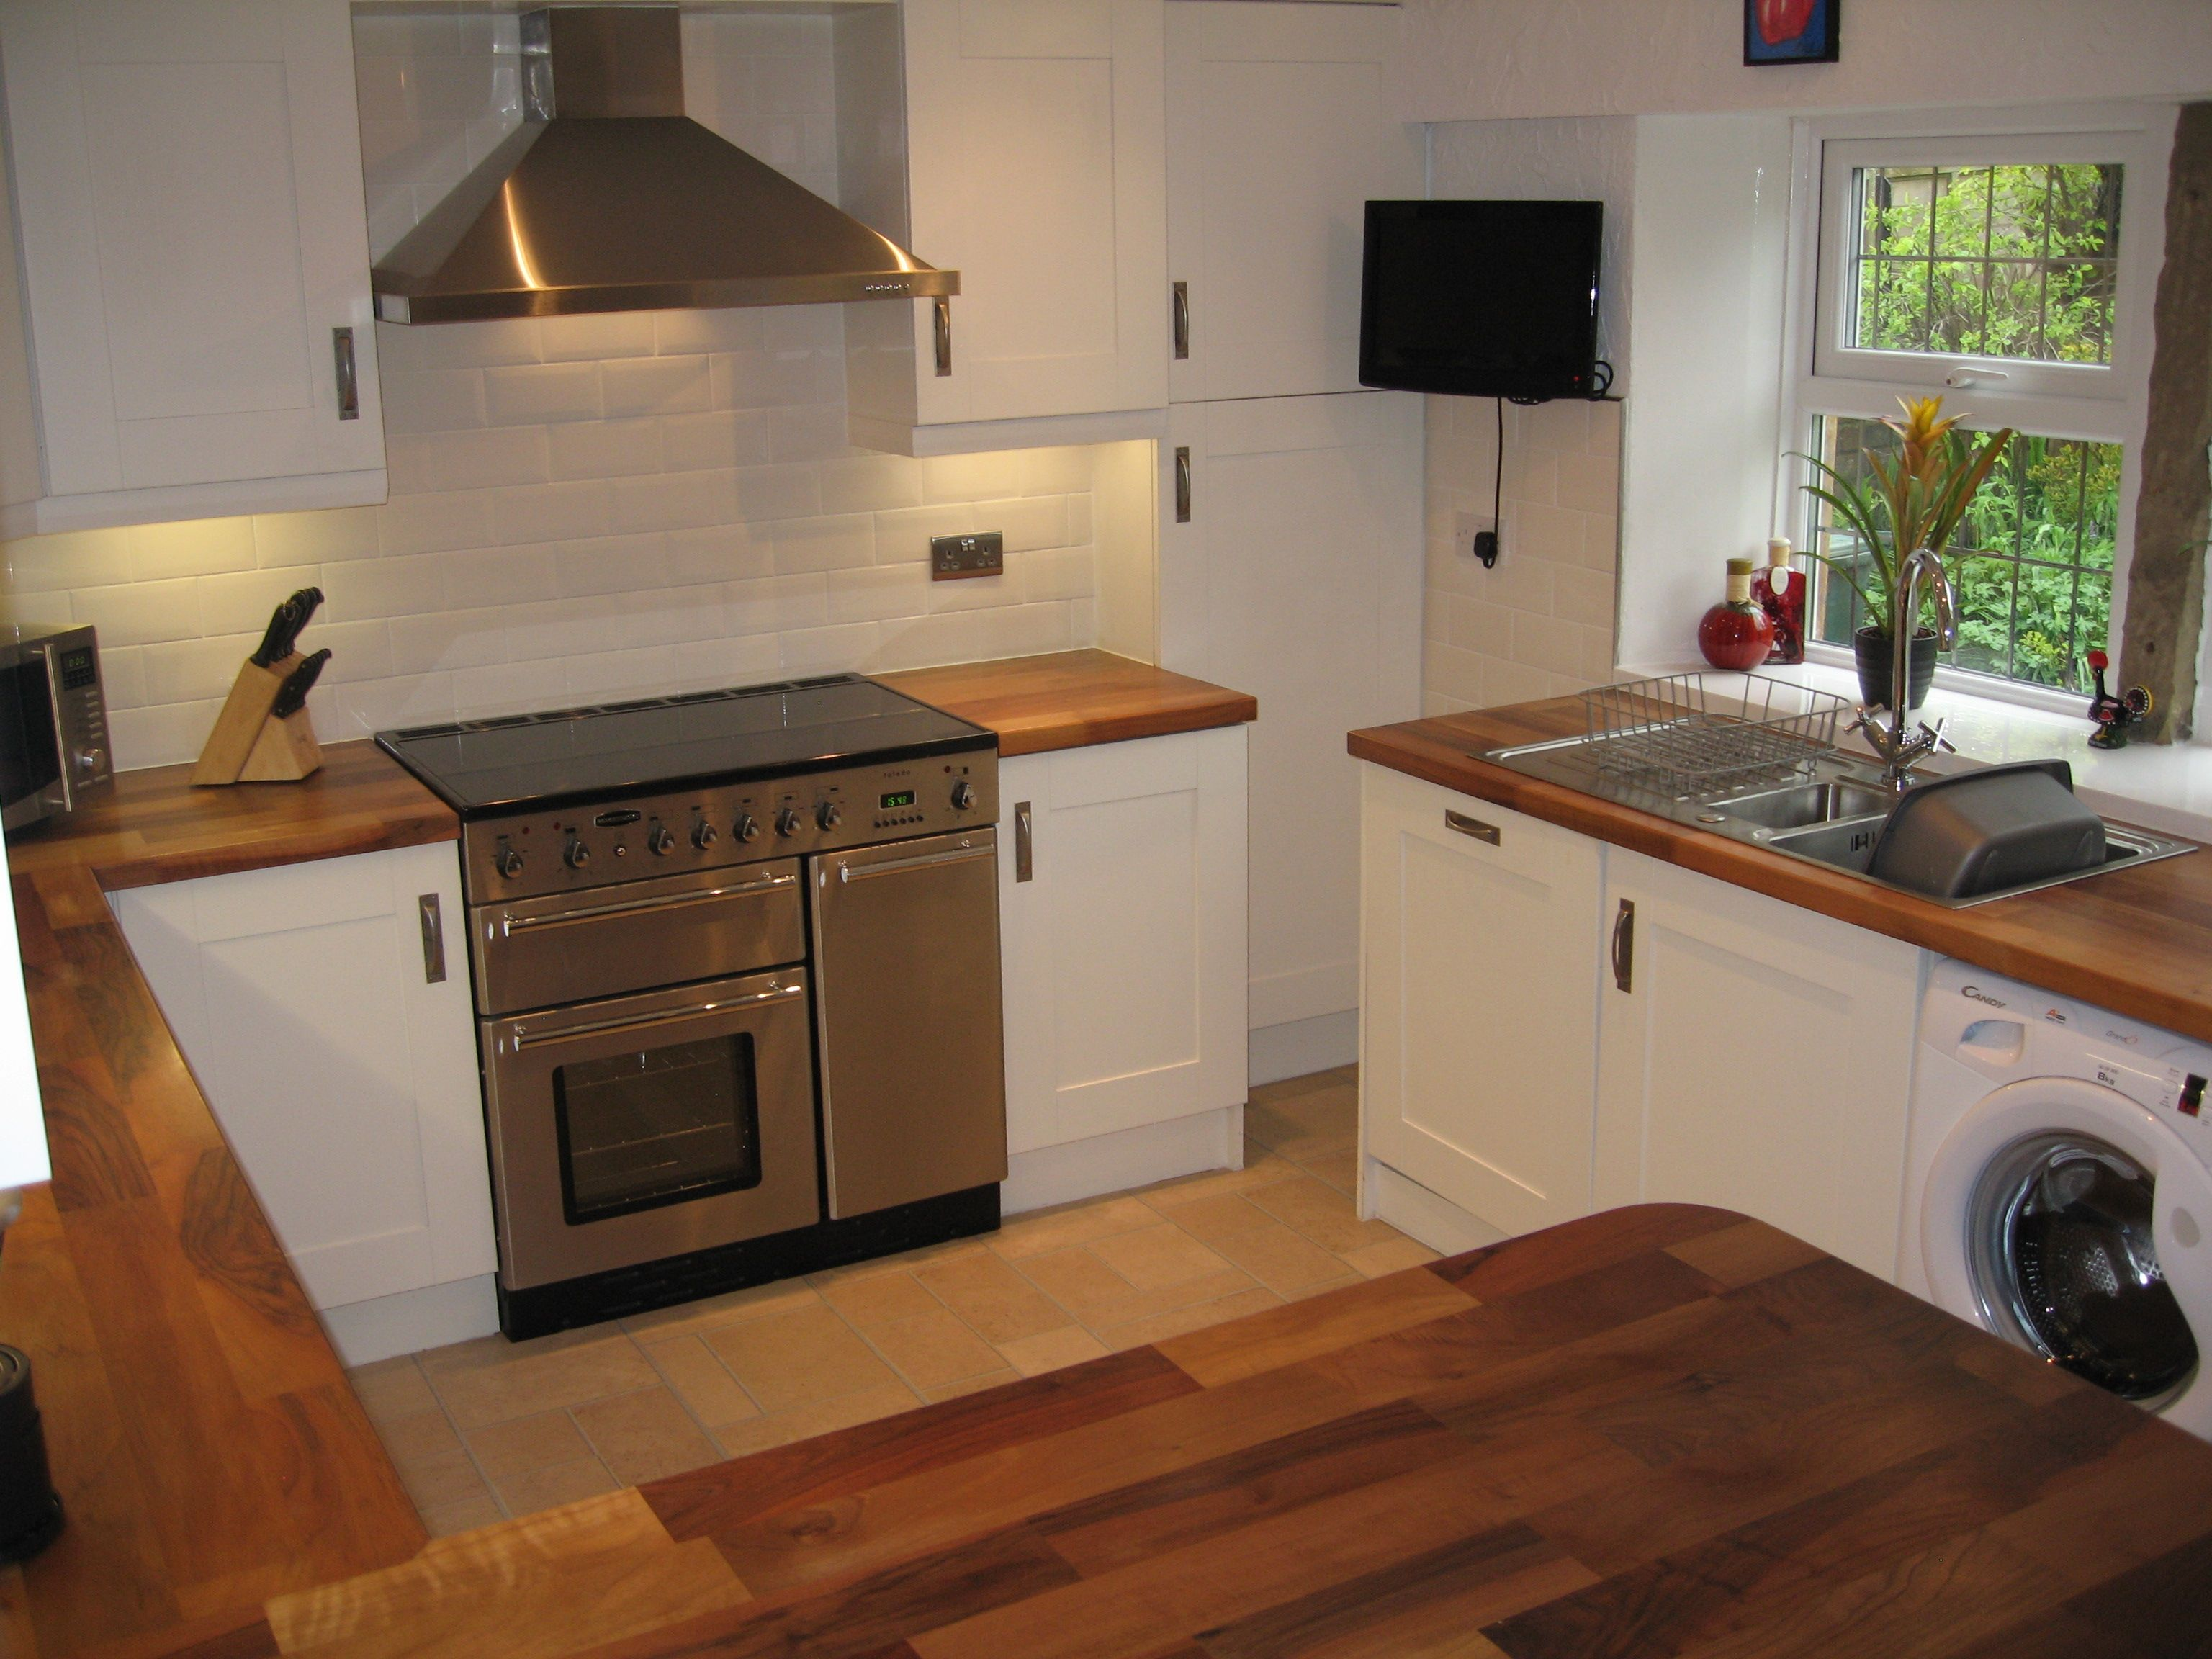 For Kitchen Worktops 17 Best Ideas About Walnut Worktops On Pinterest Walnut Wood